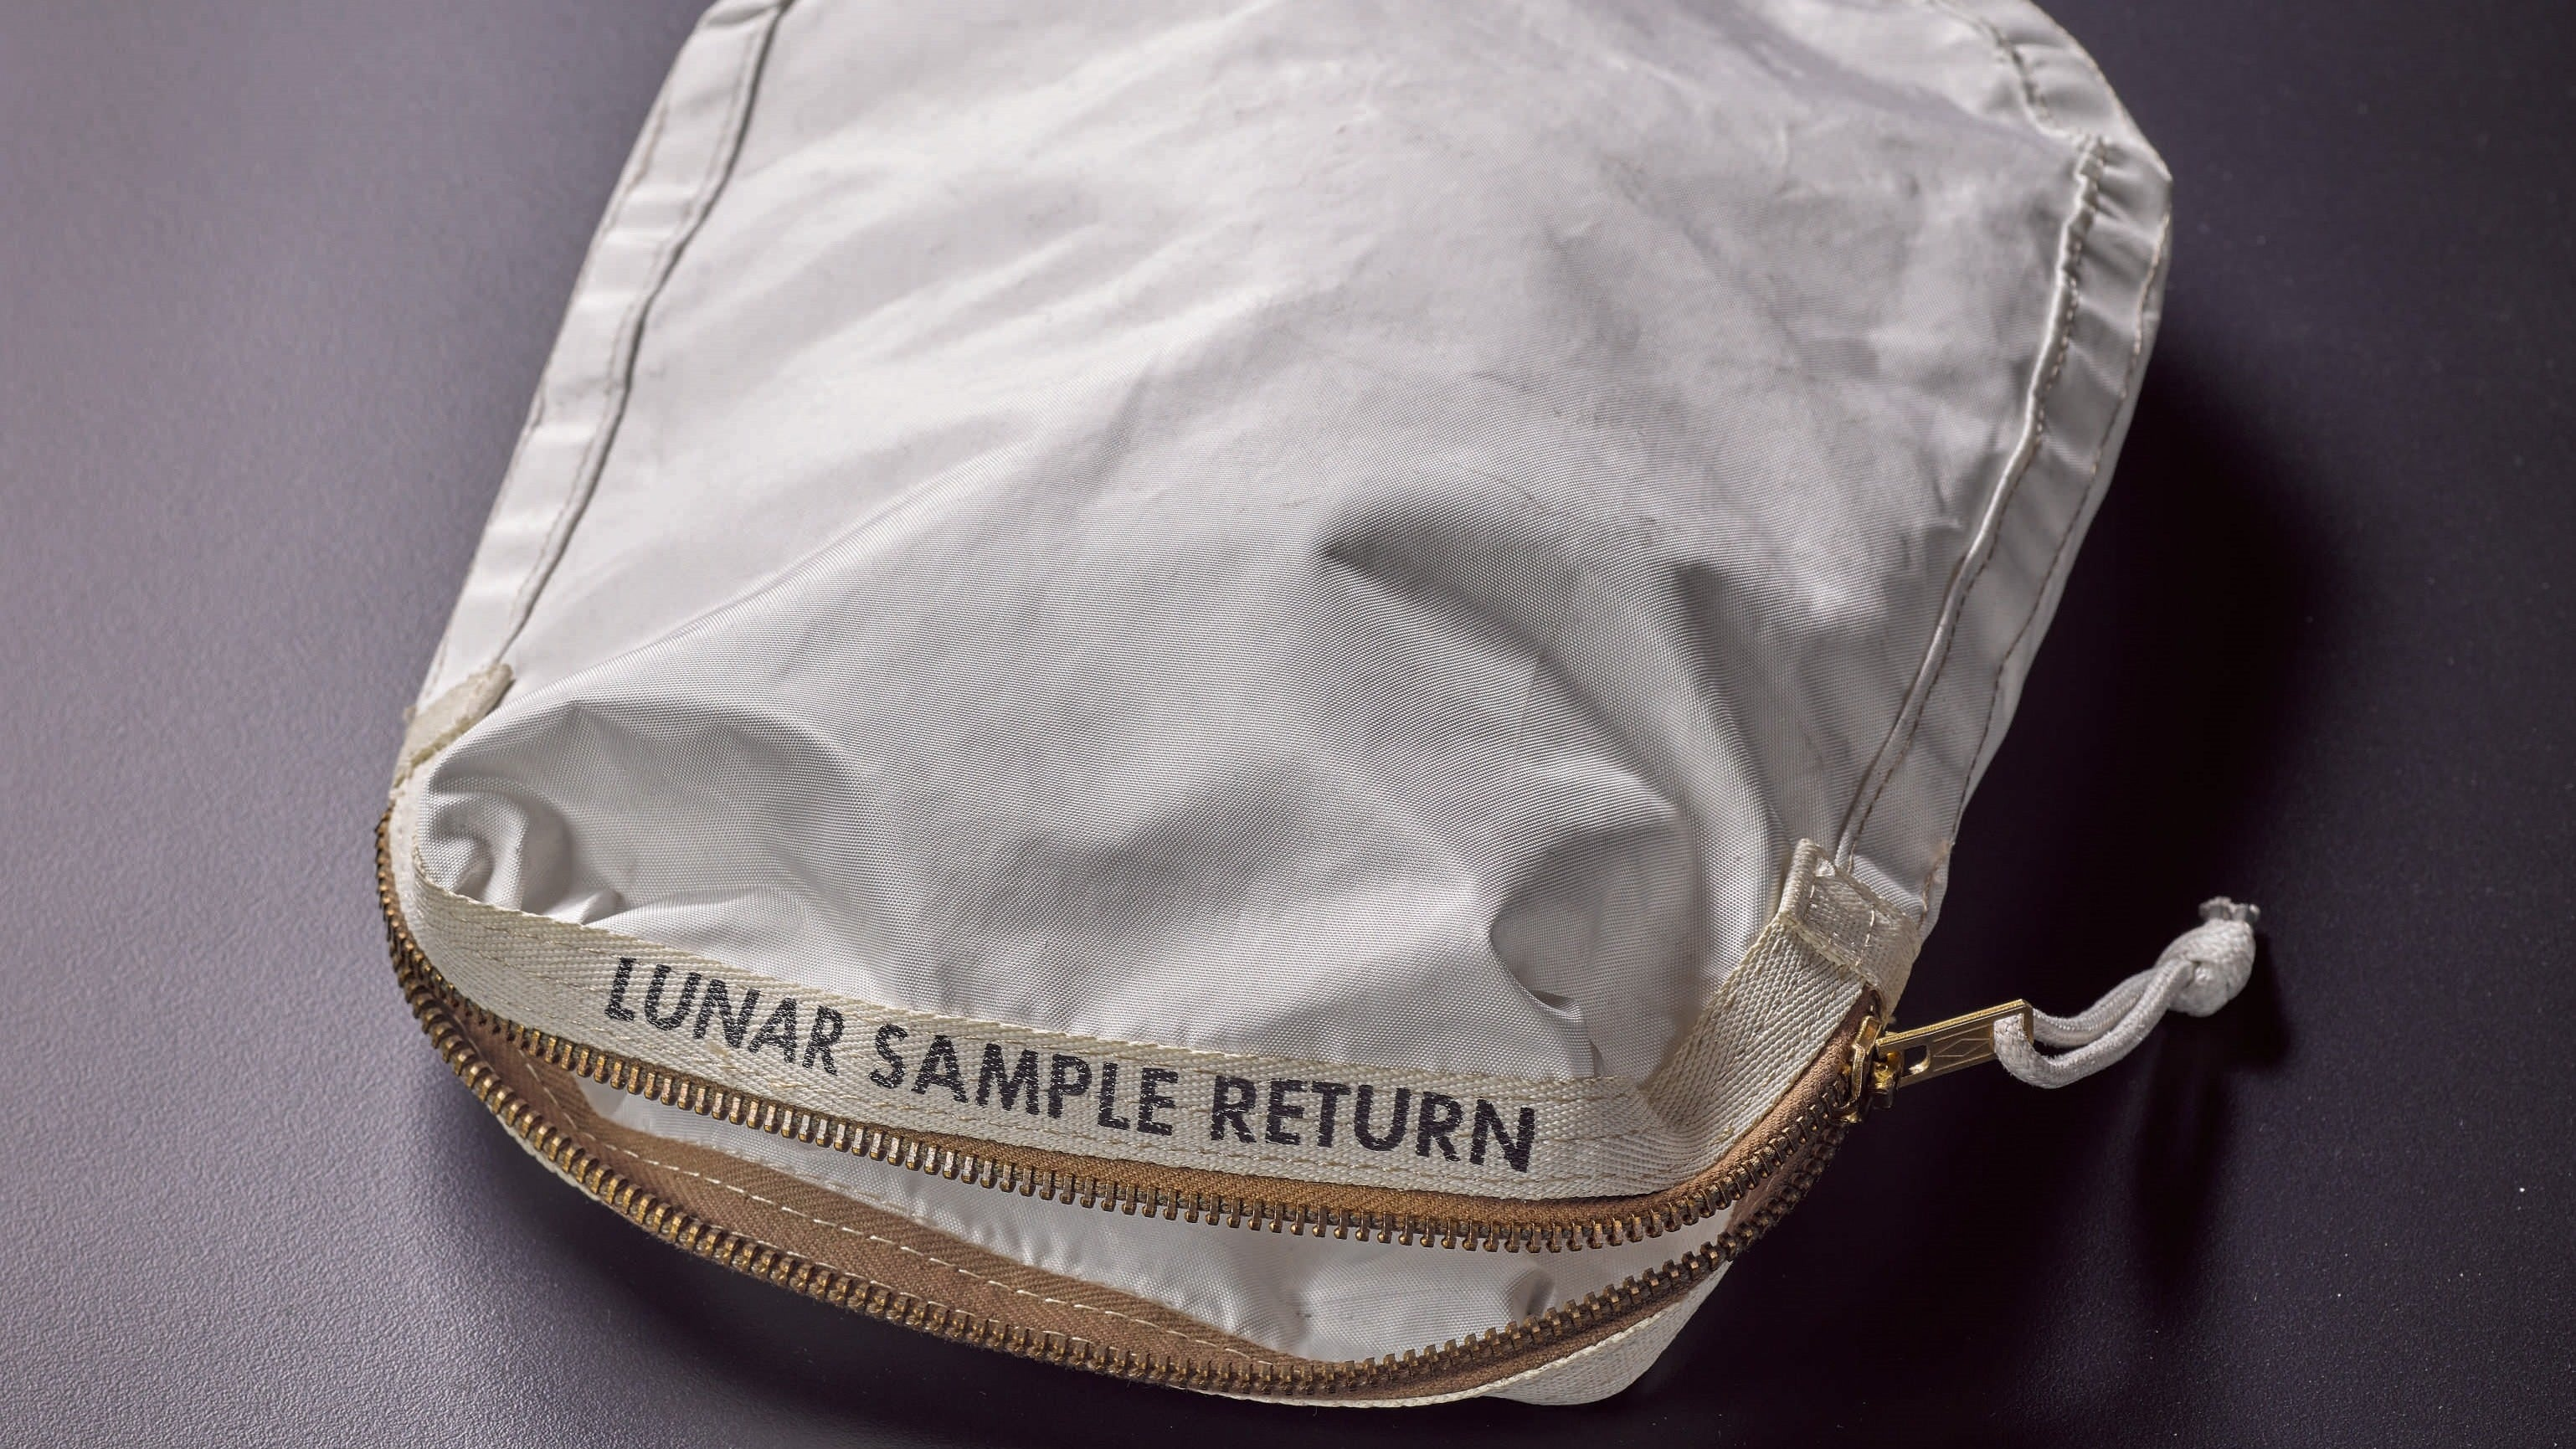 Priceless NASA Artefact Sold Against NASA's Wishes